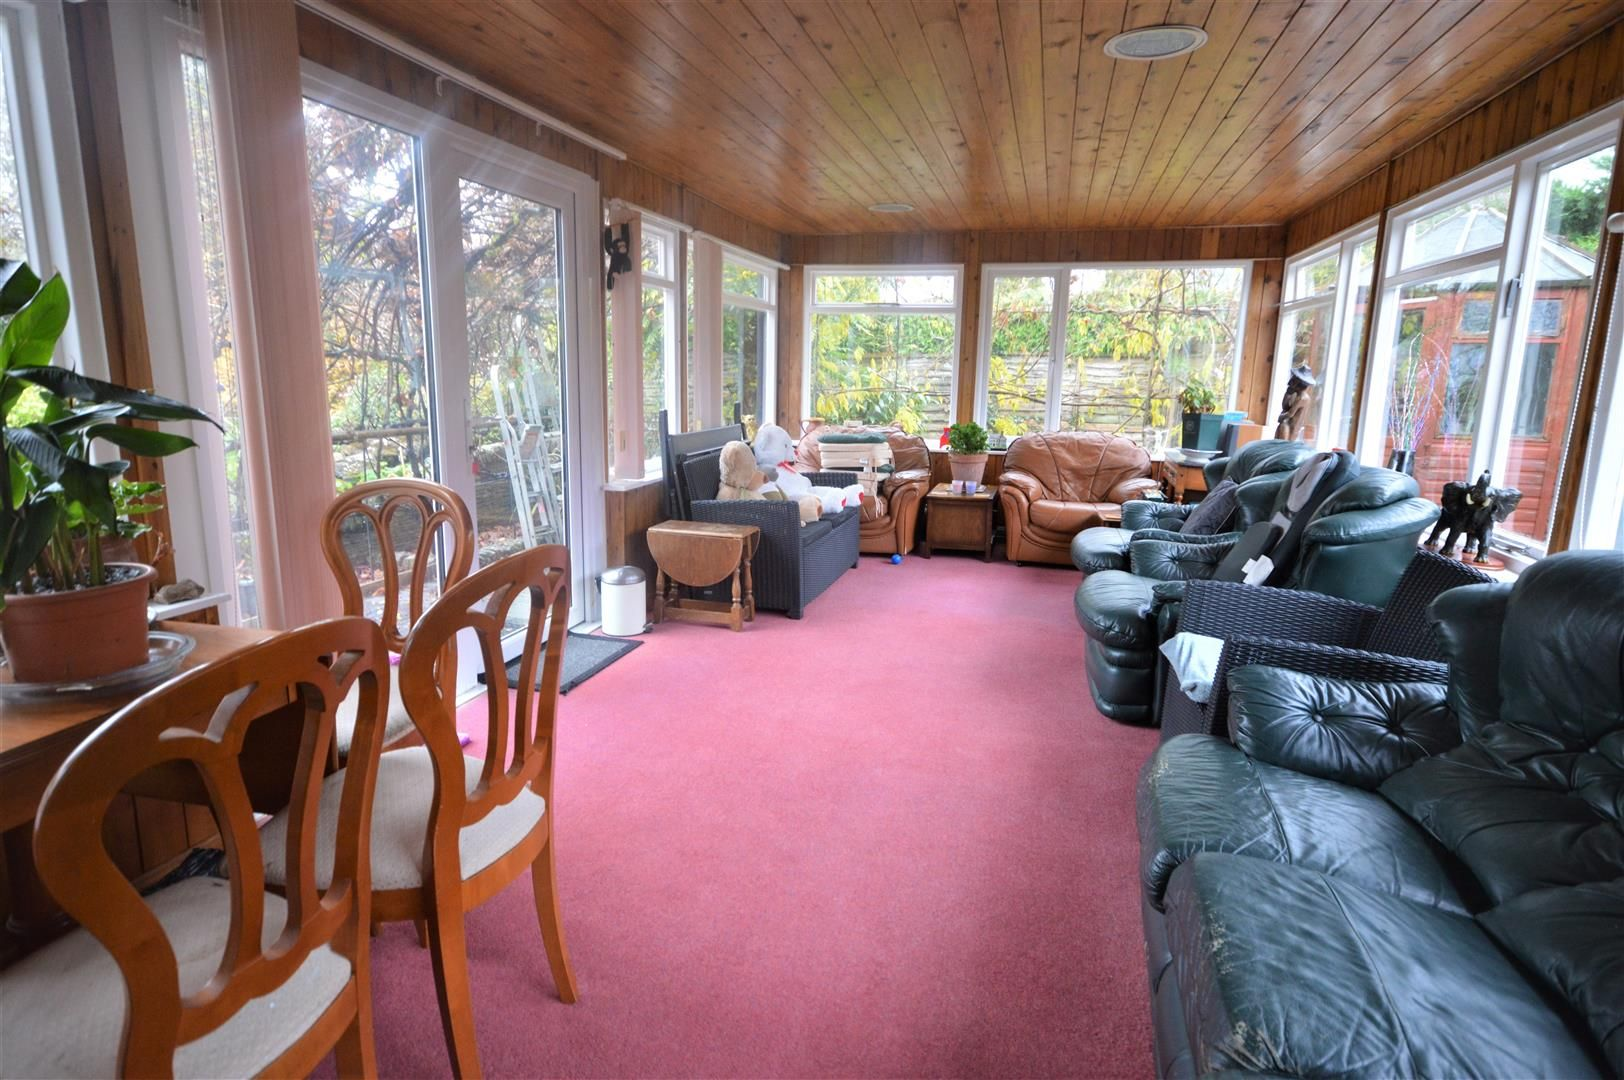 4 bed detached-bungalow for sale in Bodenham  - Property Image 6